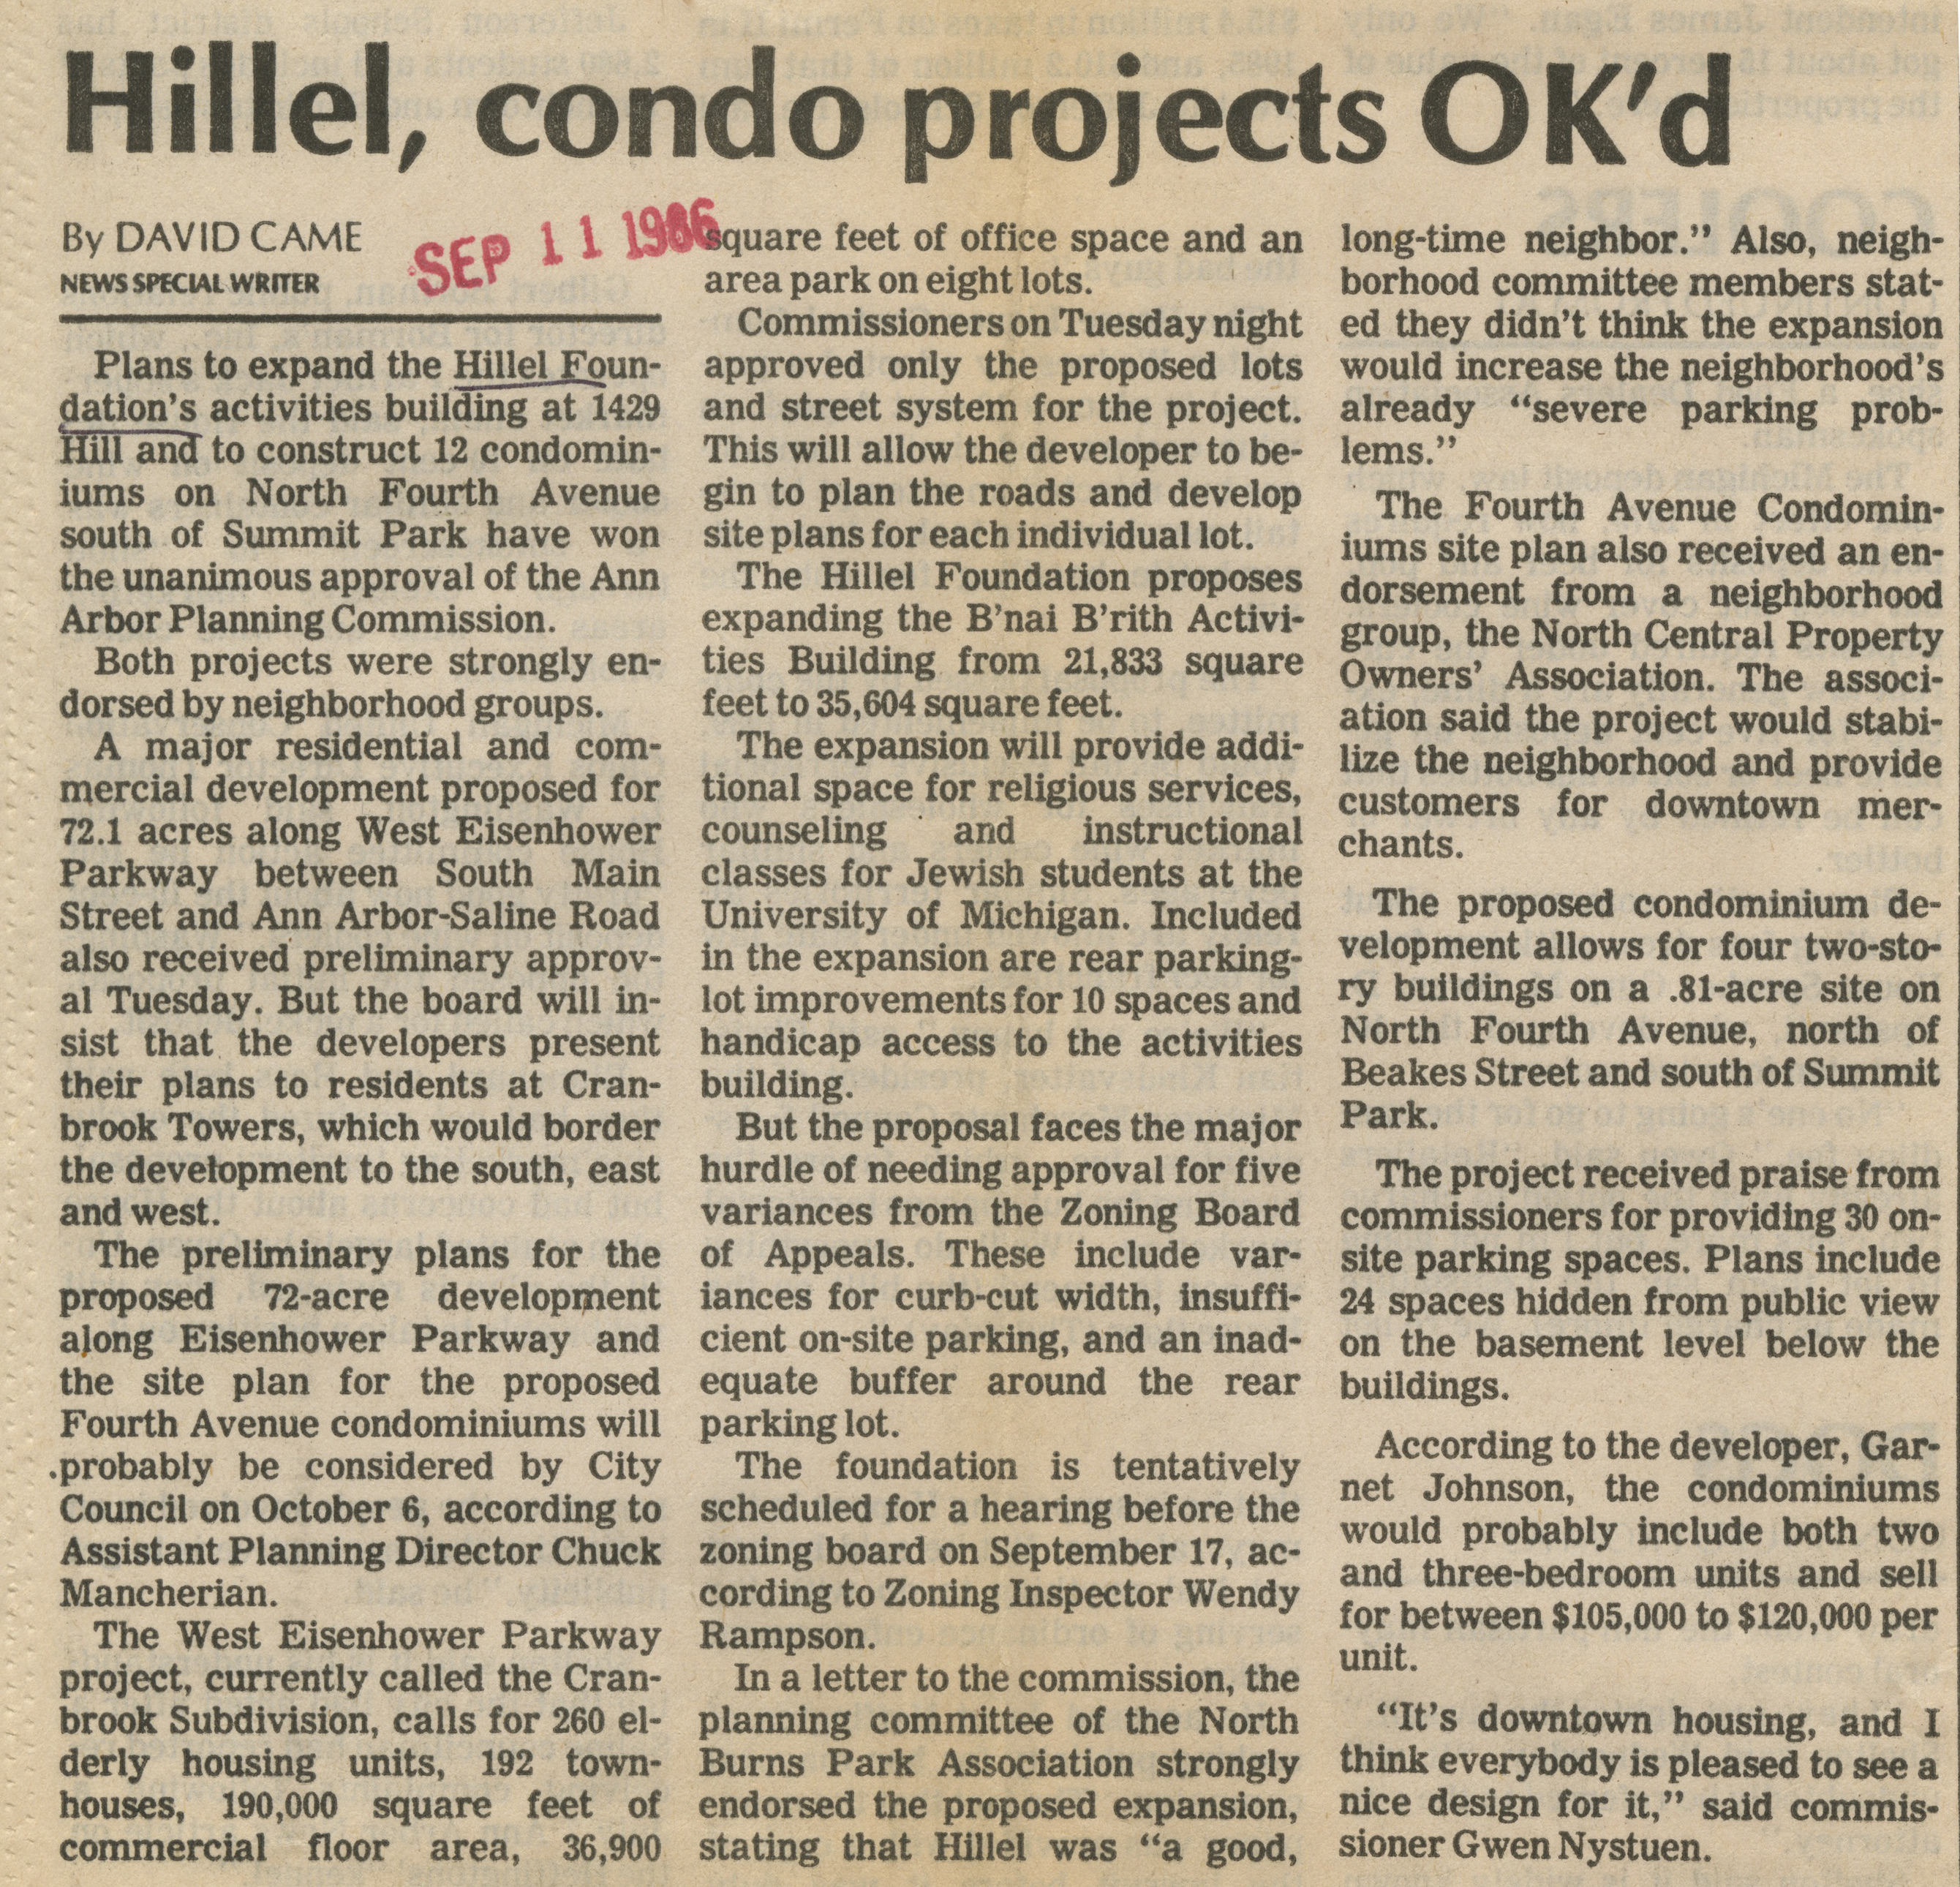 Hillel, Condo Projects OK'd image